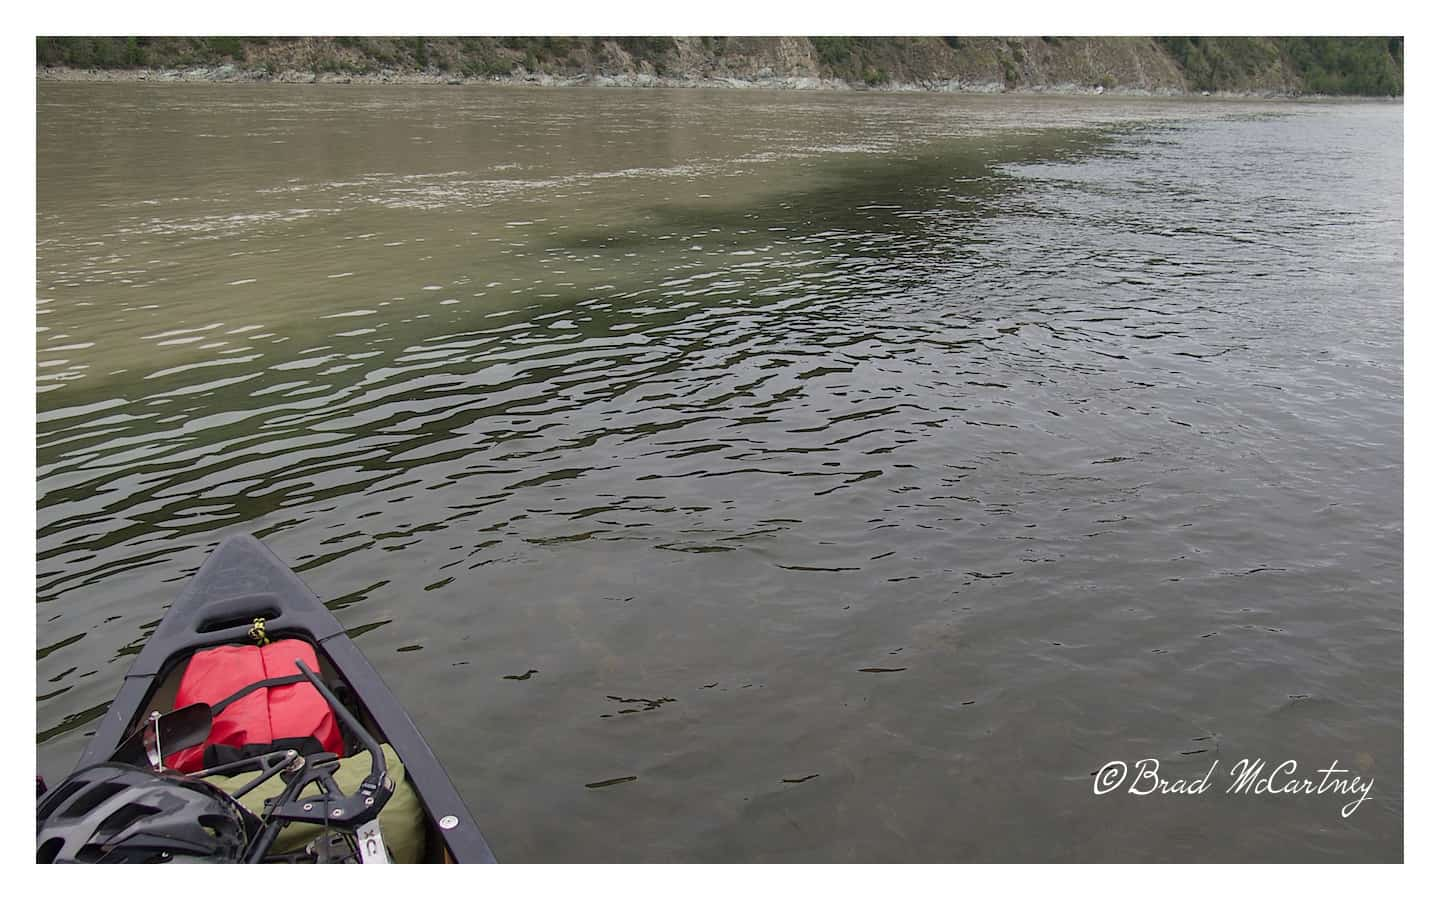 At Dawson City the Yukon River (loaded with silt) merges with the Klondike River which is clear (almost).